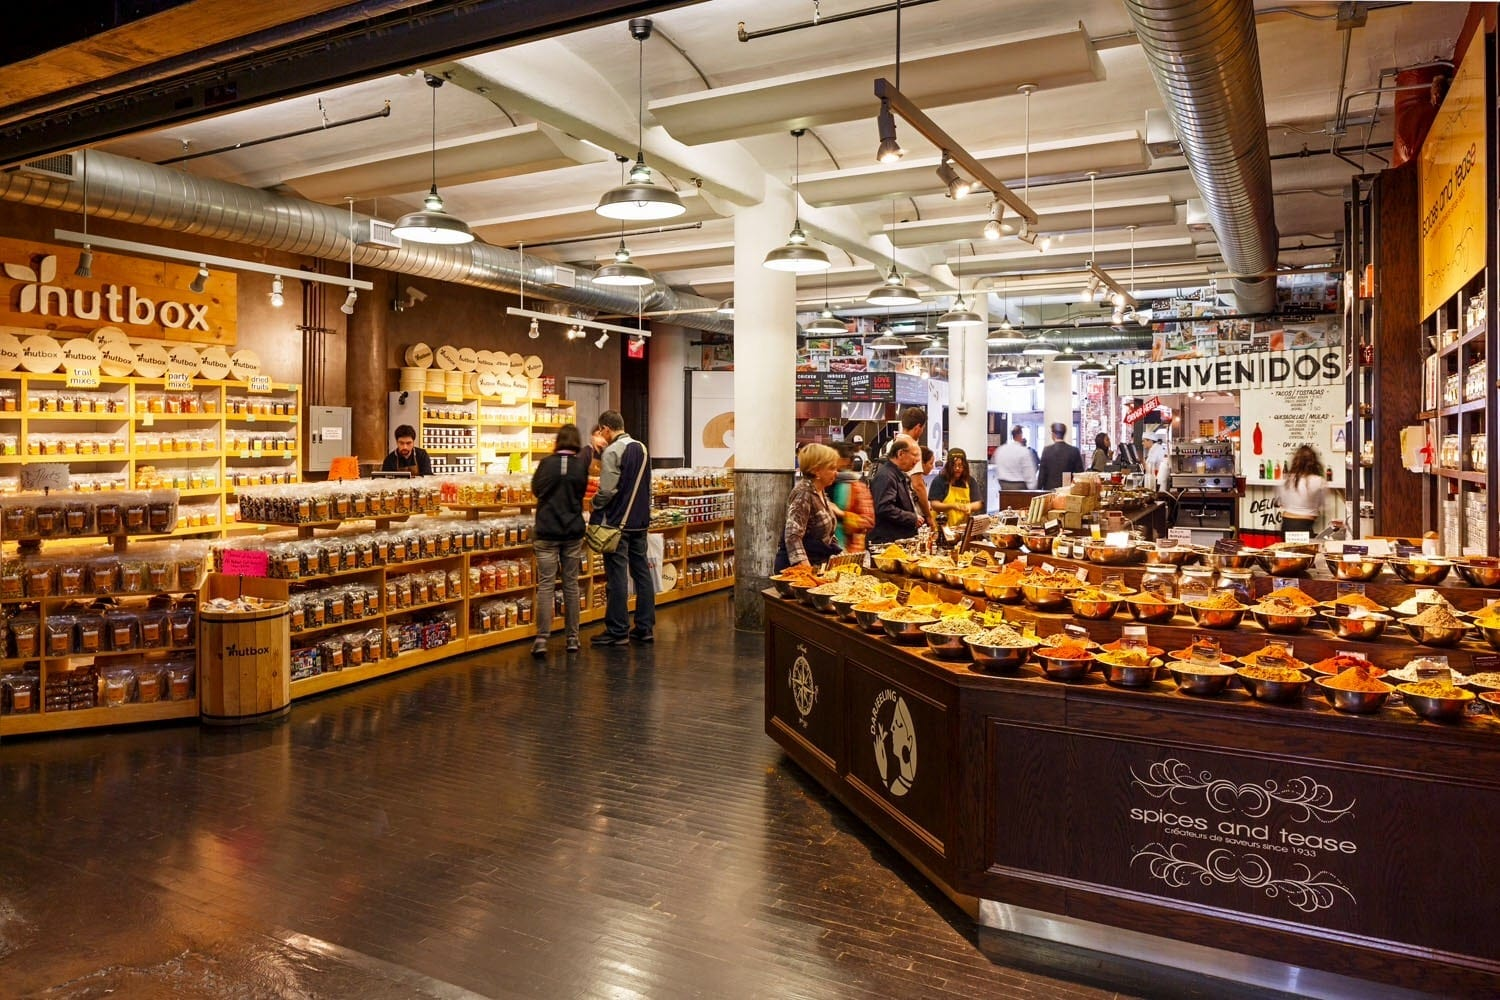 Chelsea Market Inside View, NYC